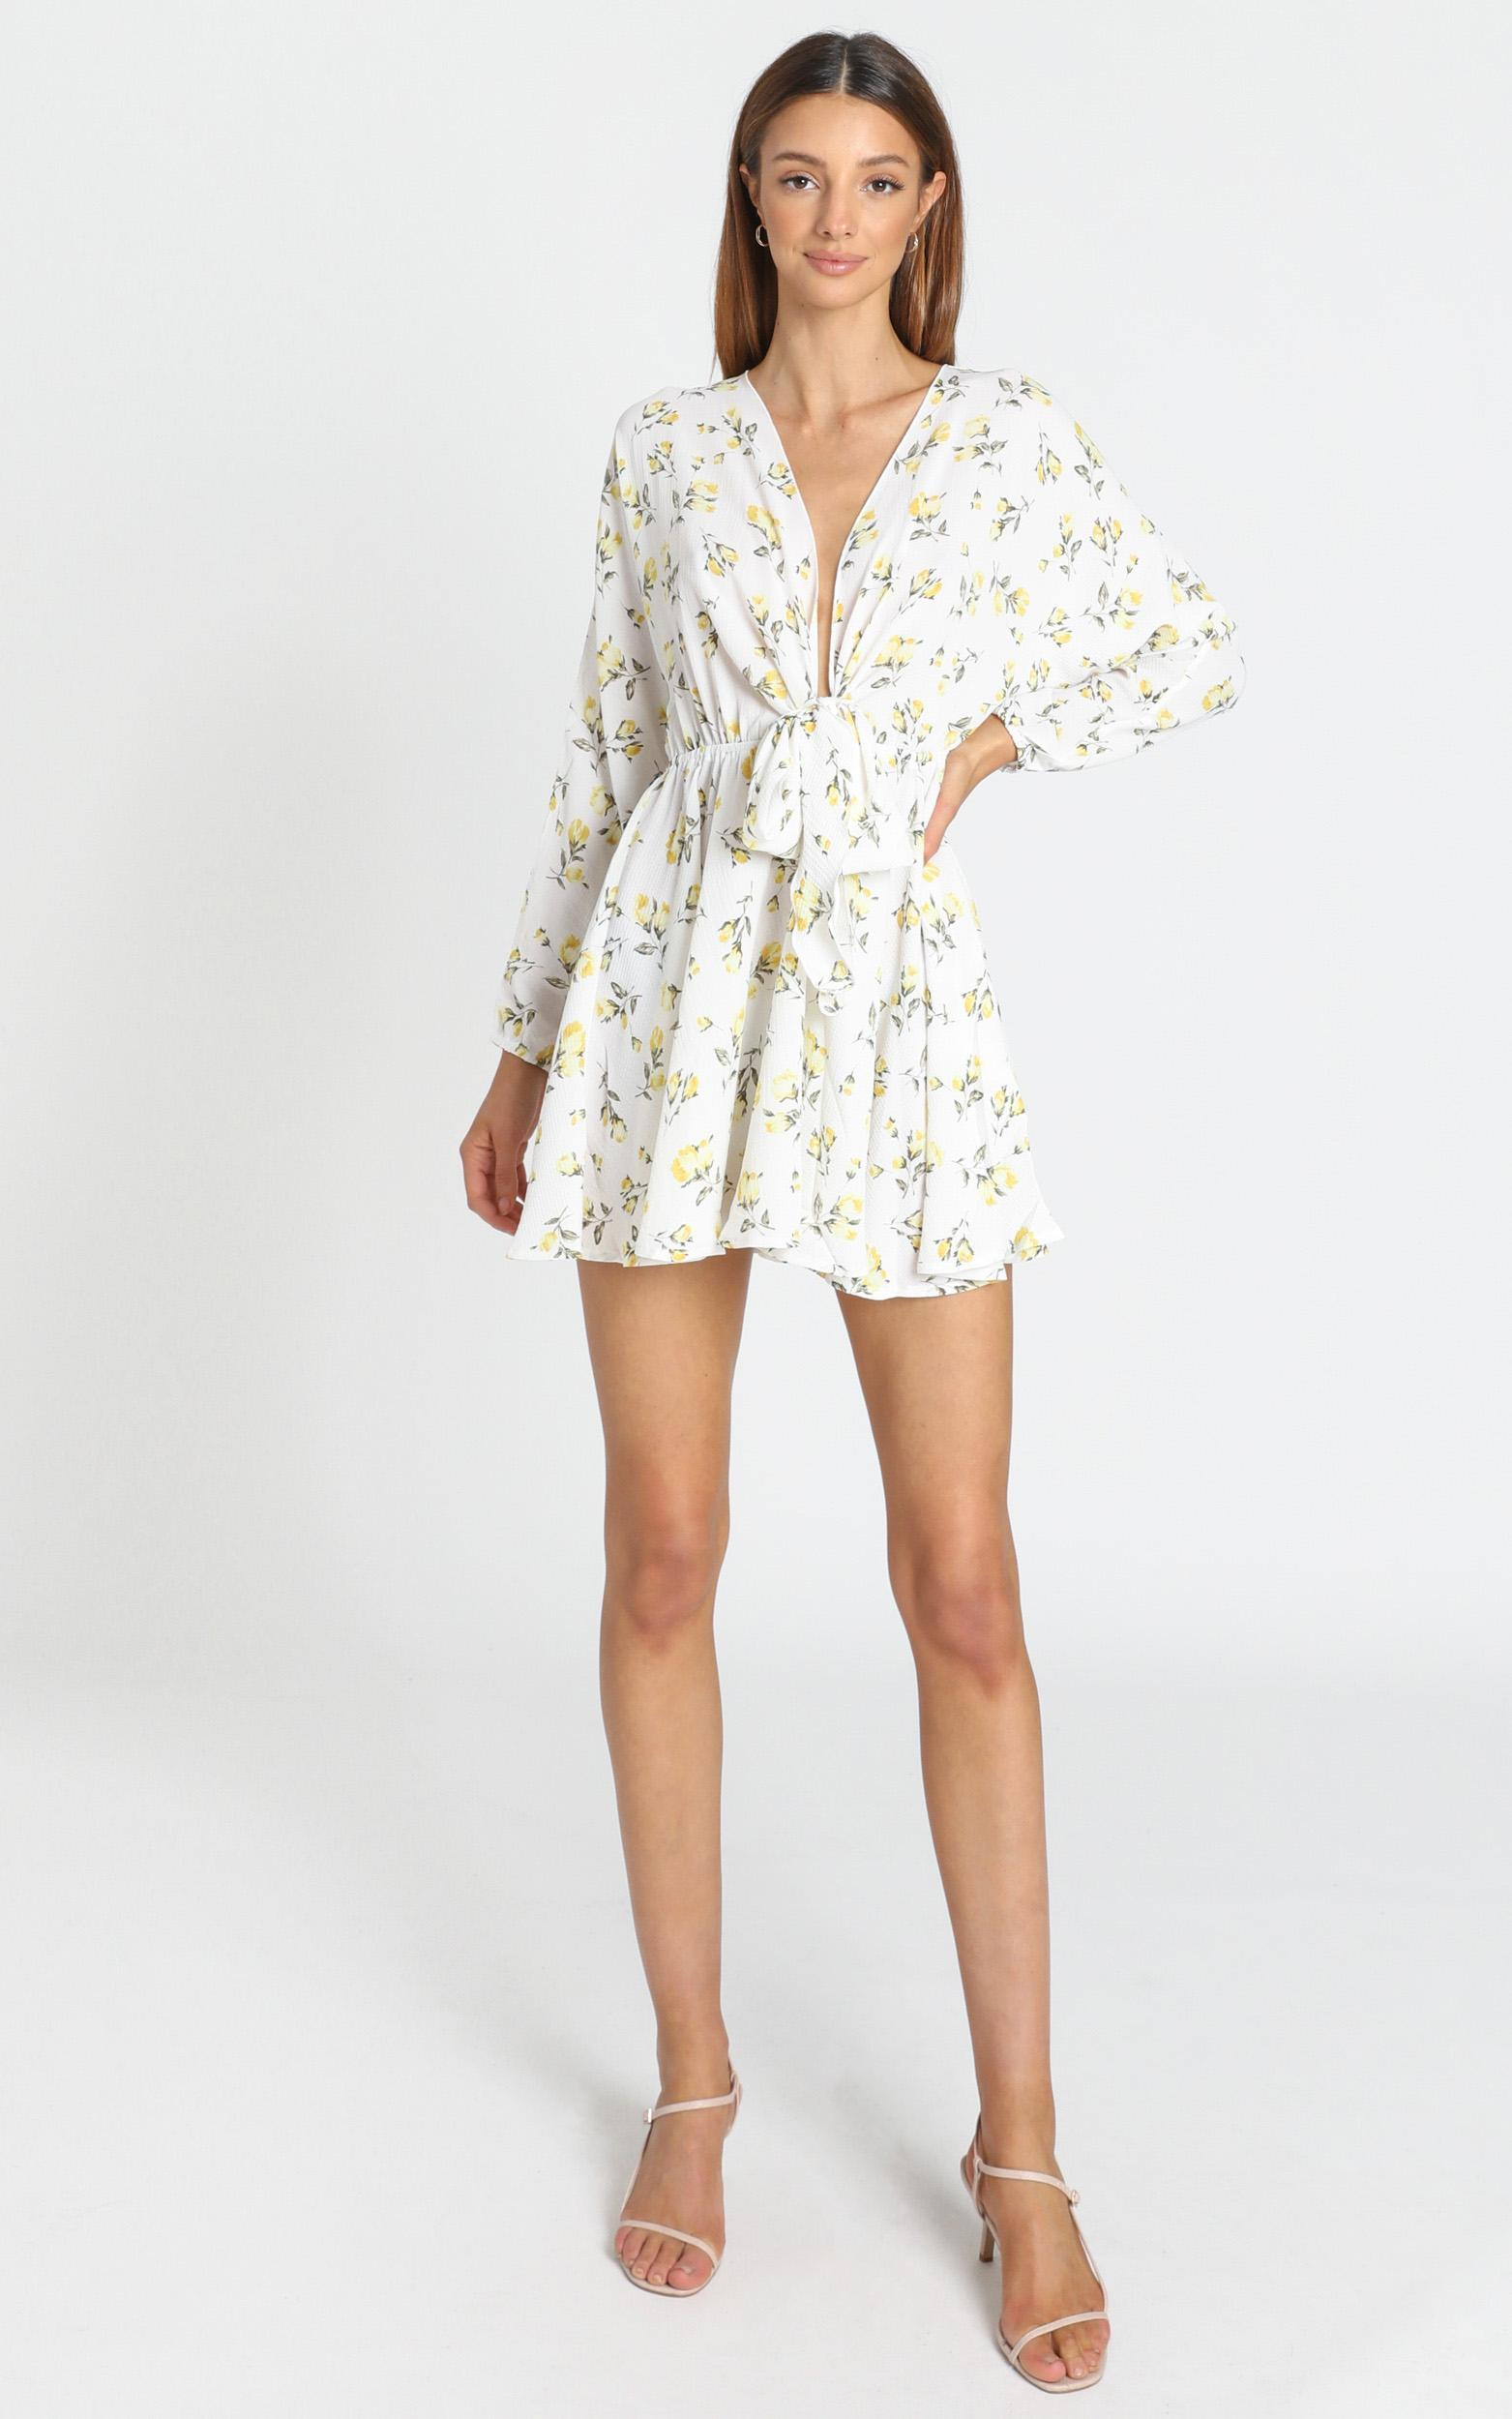 Lone Star Dress in White Floral - 6 (XS), White, hi-res image number null